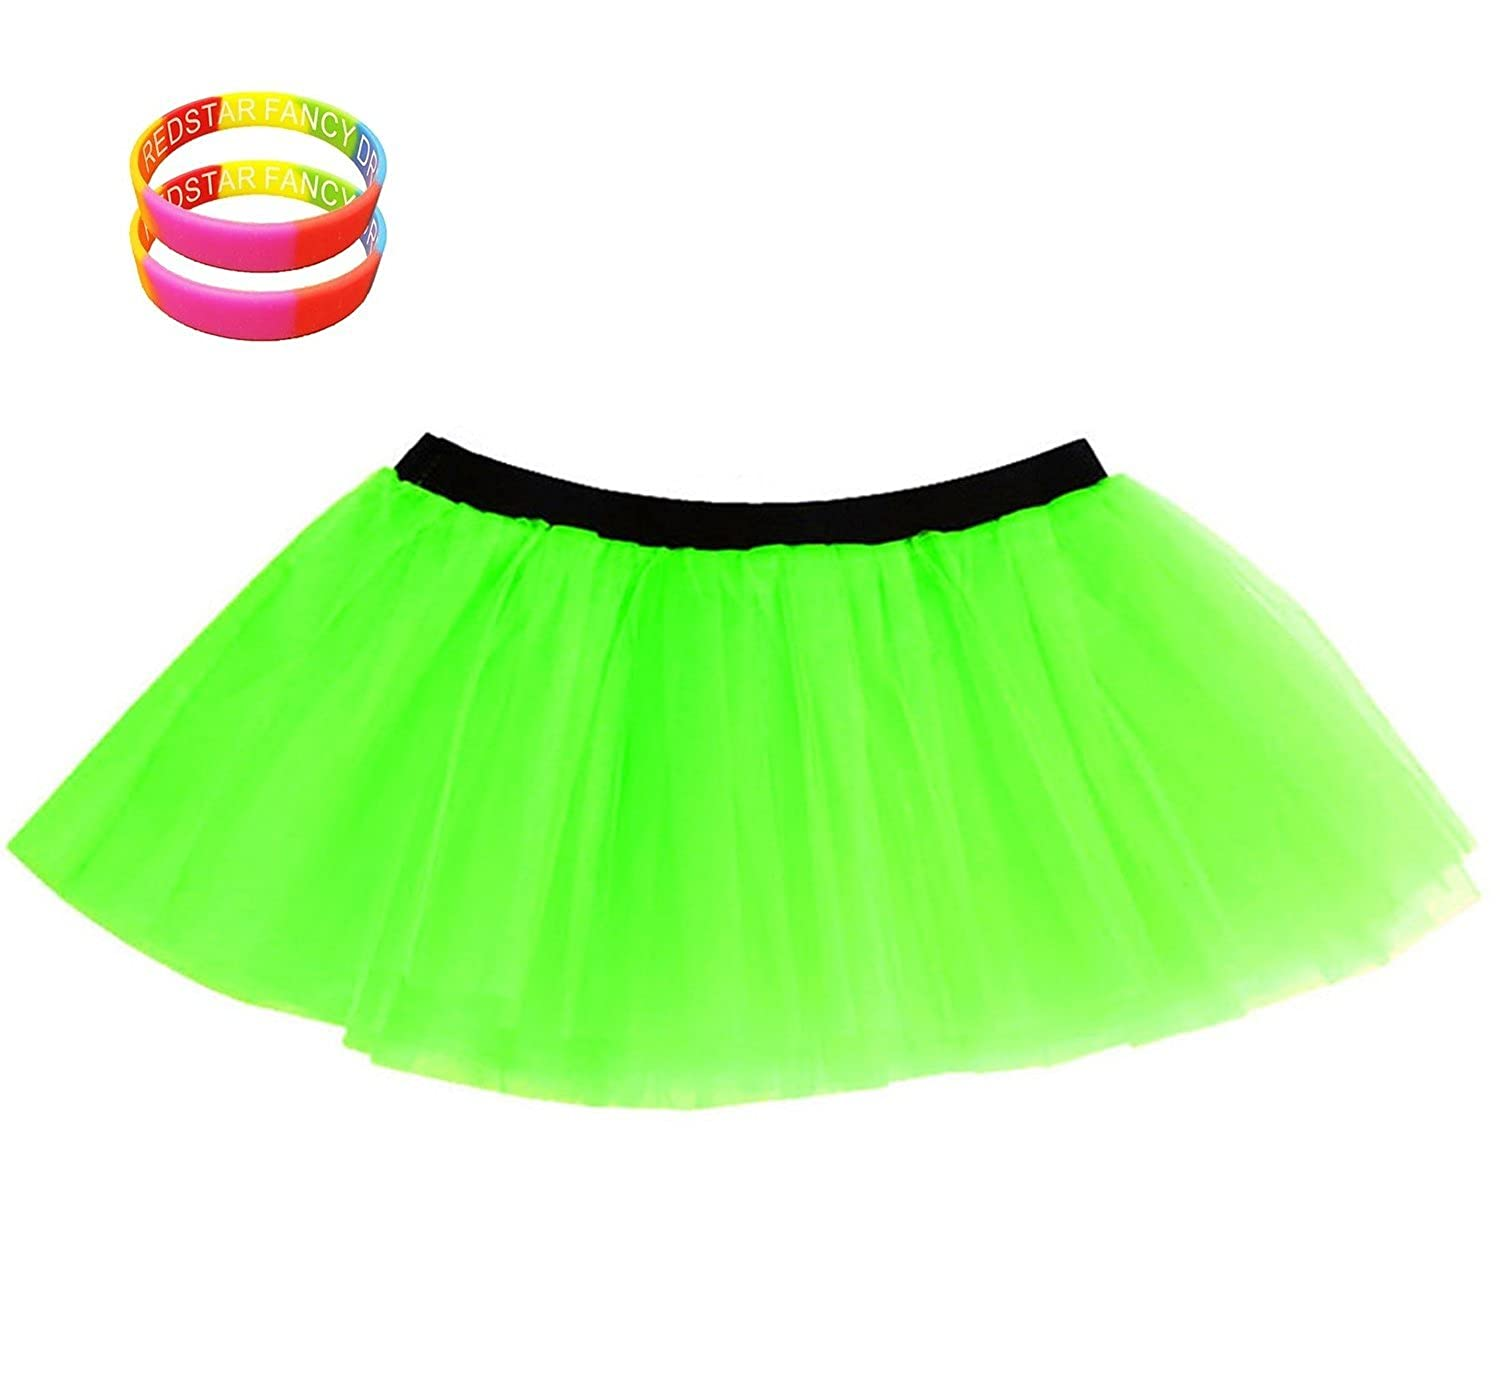 2X Free Rainbow Wristbands Red Star Redstar Fancy Dress Neon Tutu Skirt Perfect for 80s Neon Nights Fun Runs and Events